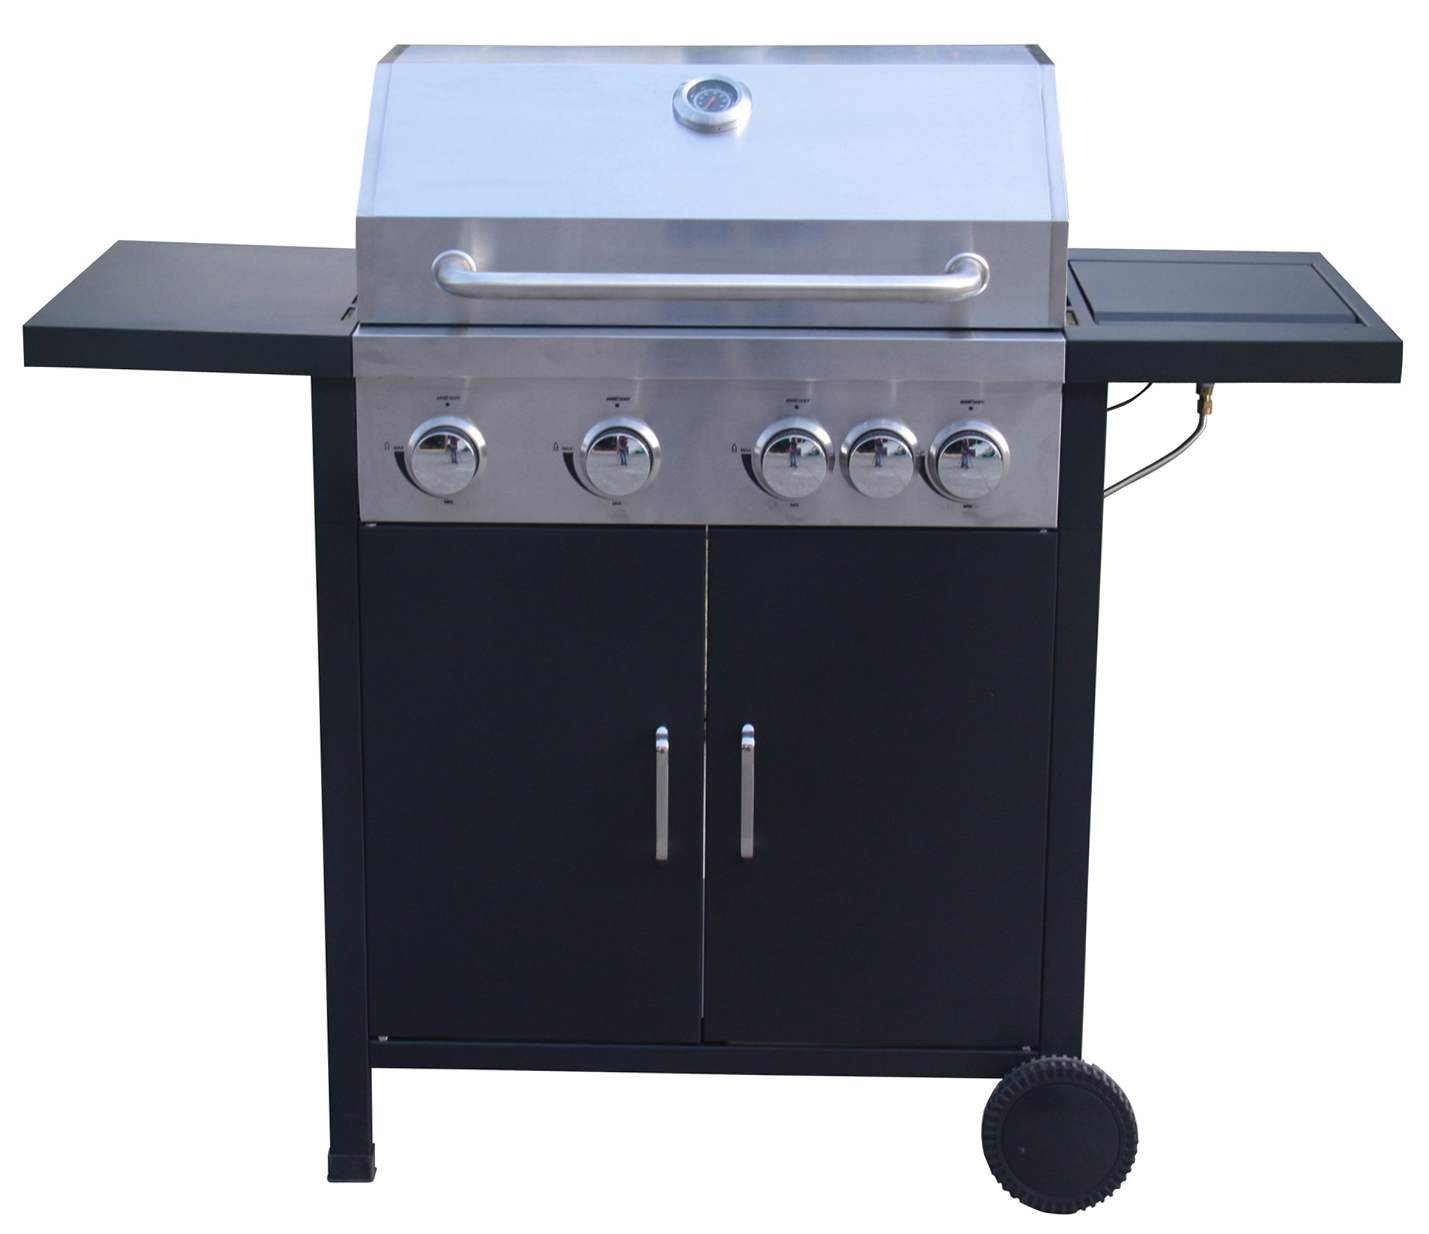 1 PZ Di *BARBECUE C/FORNELLO MOD.PM2-H304-S(KC34B+SB)